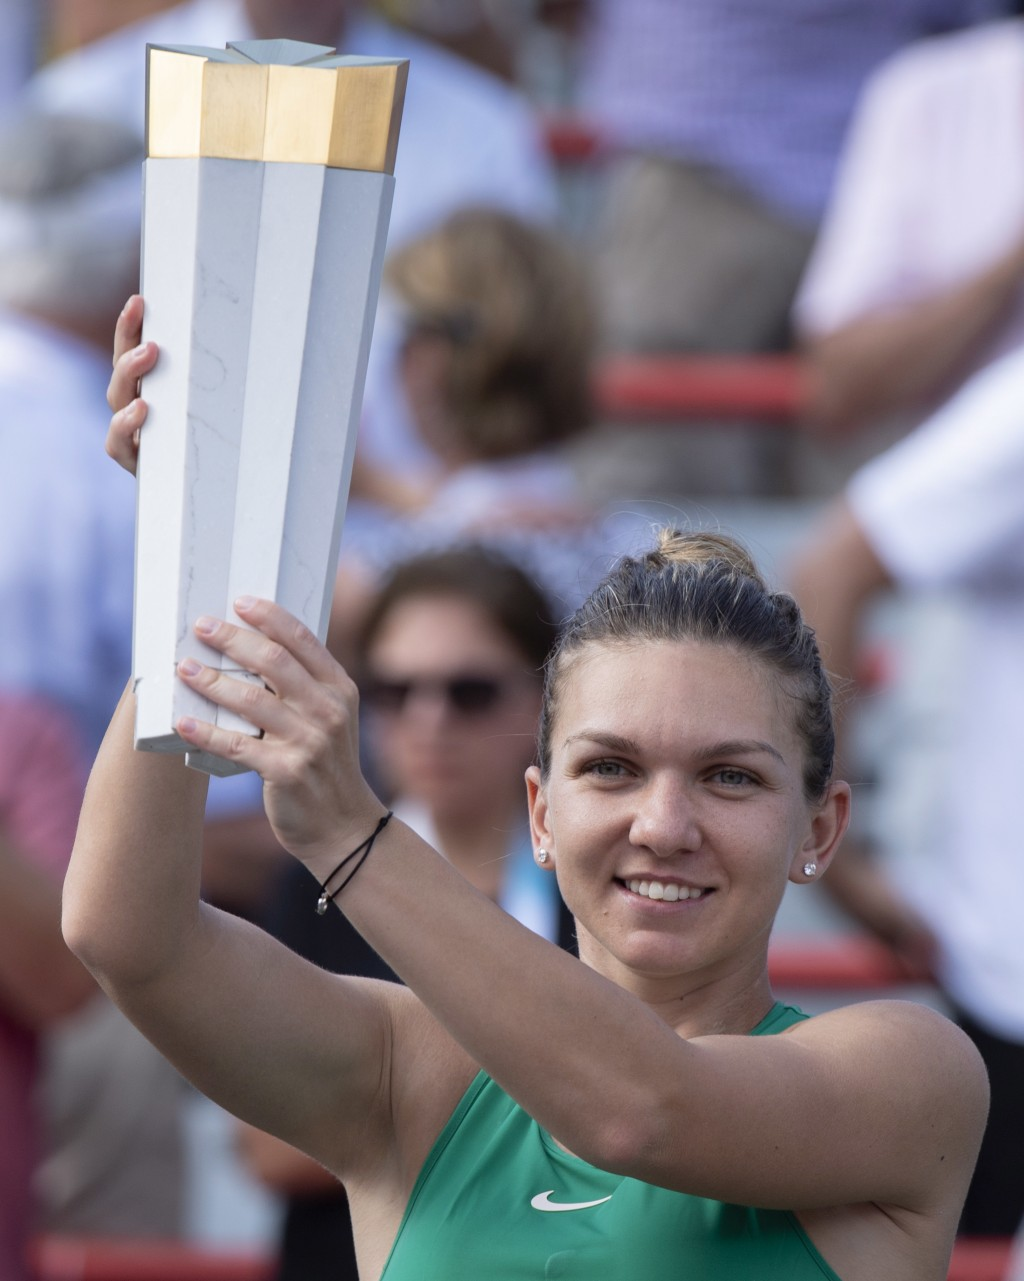 Simona Halep, of Romania, holds the trophy after defeating Sloane Stephens, of the United States, in the final of the Rogers Cup women's tennis tourna